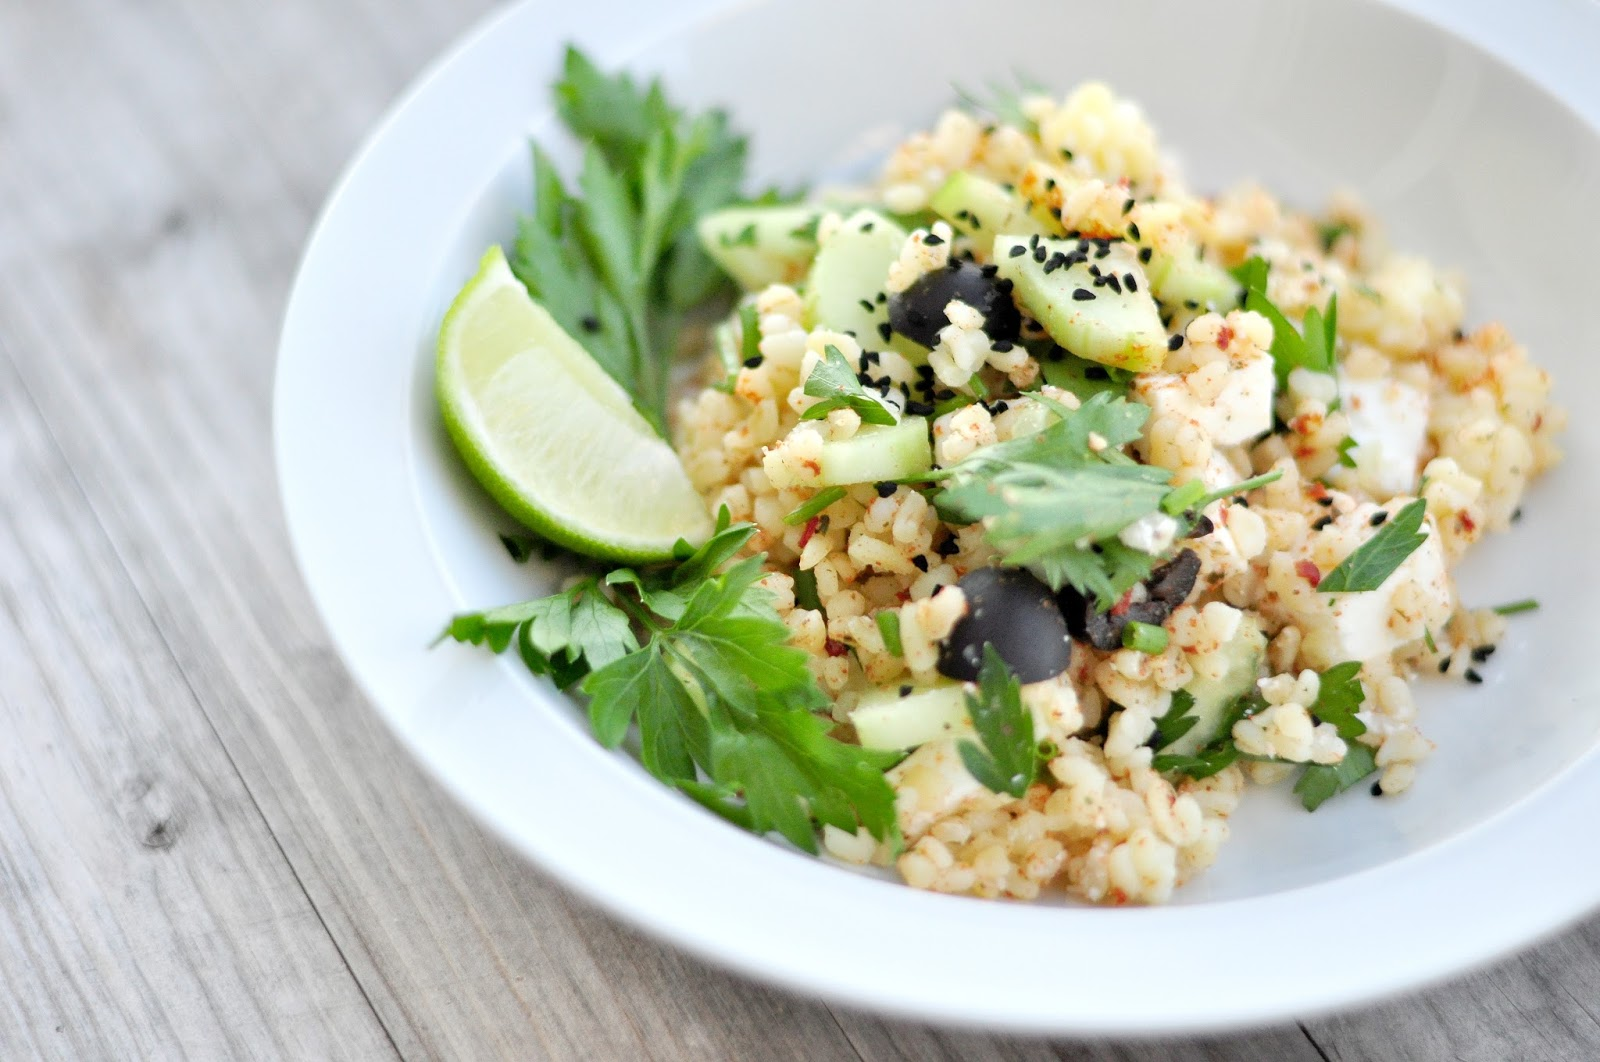 simple recipe salad bulgur black cumin seeds